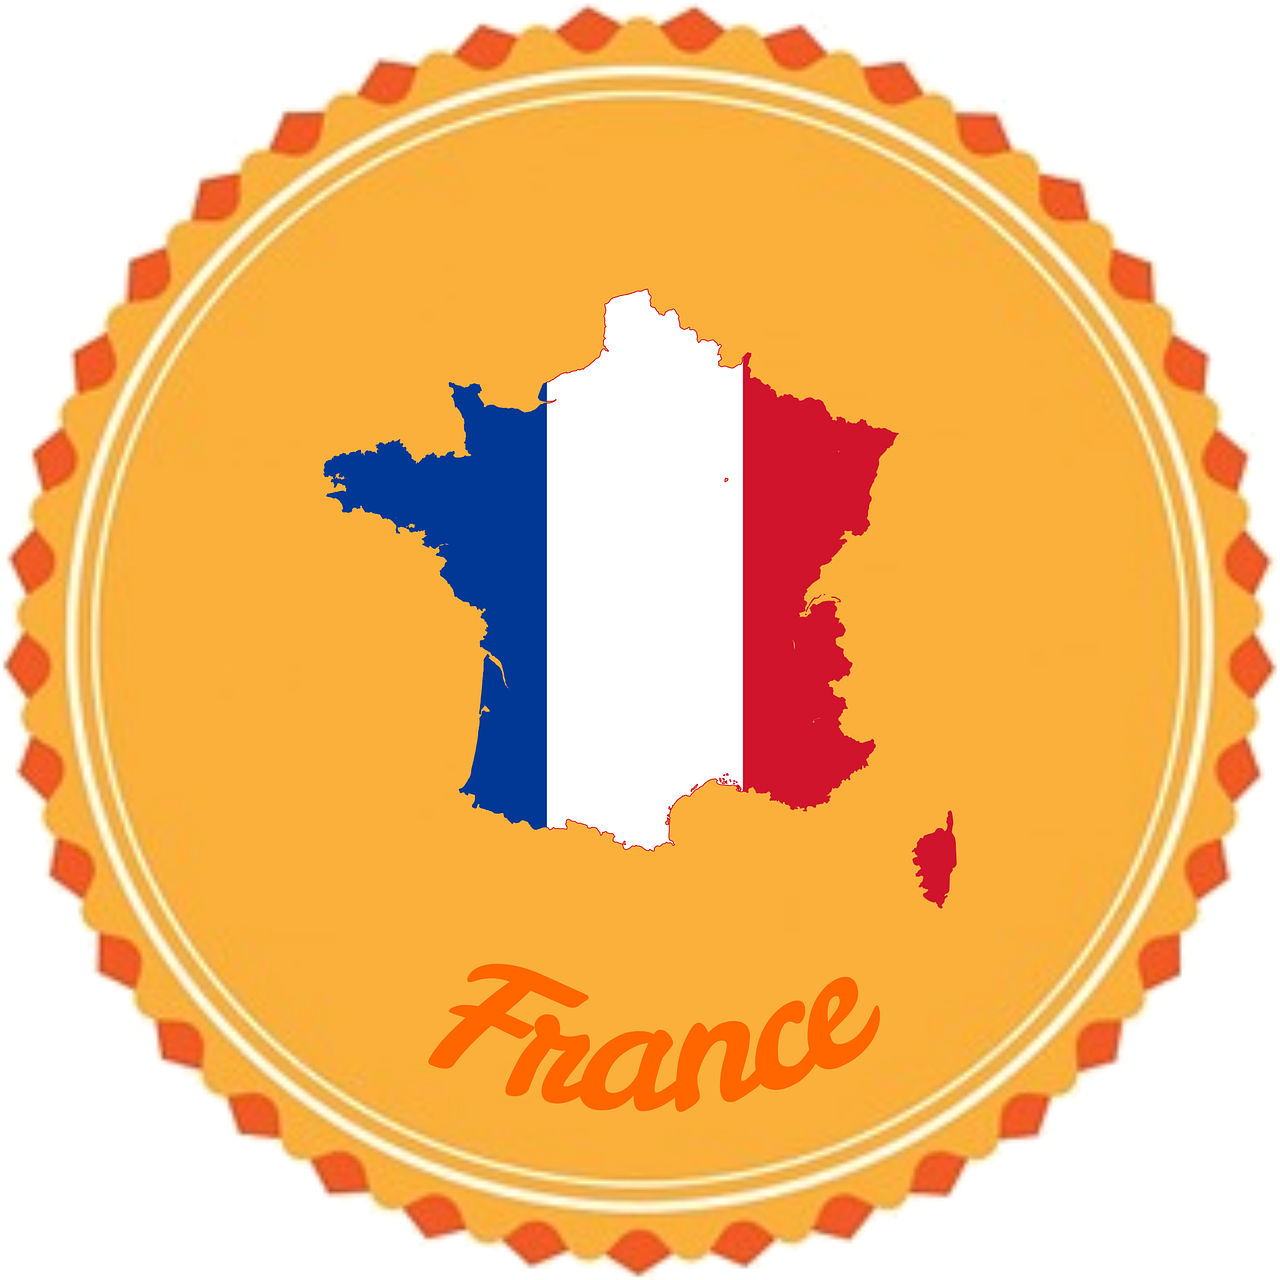 France badge flair icon. Europe clipart flag europe